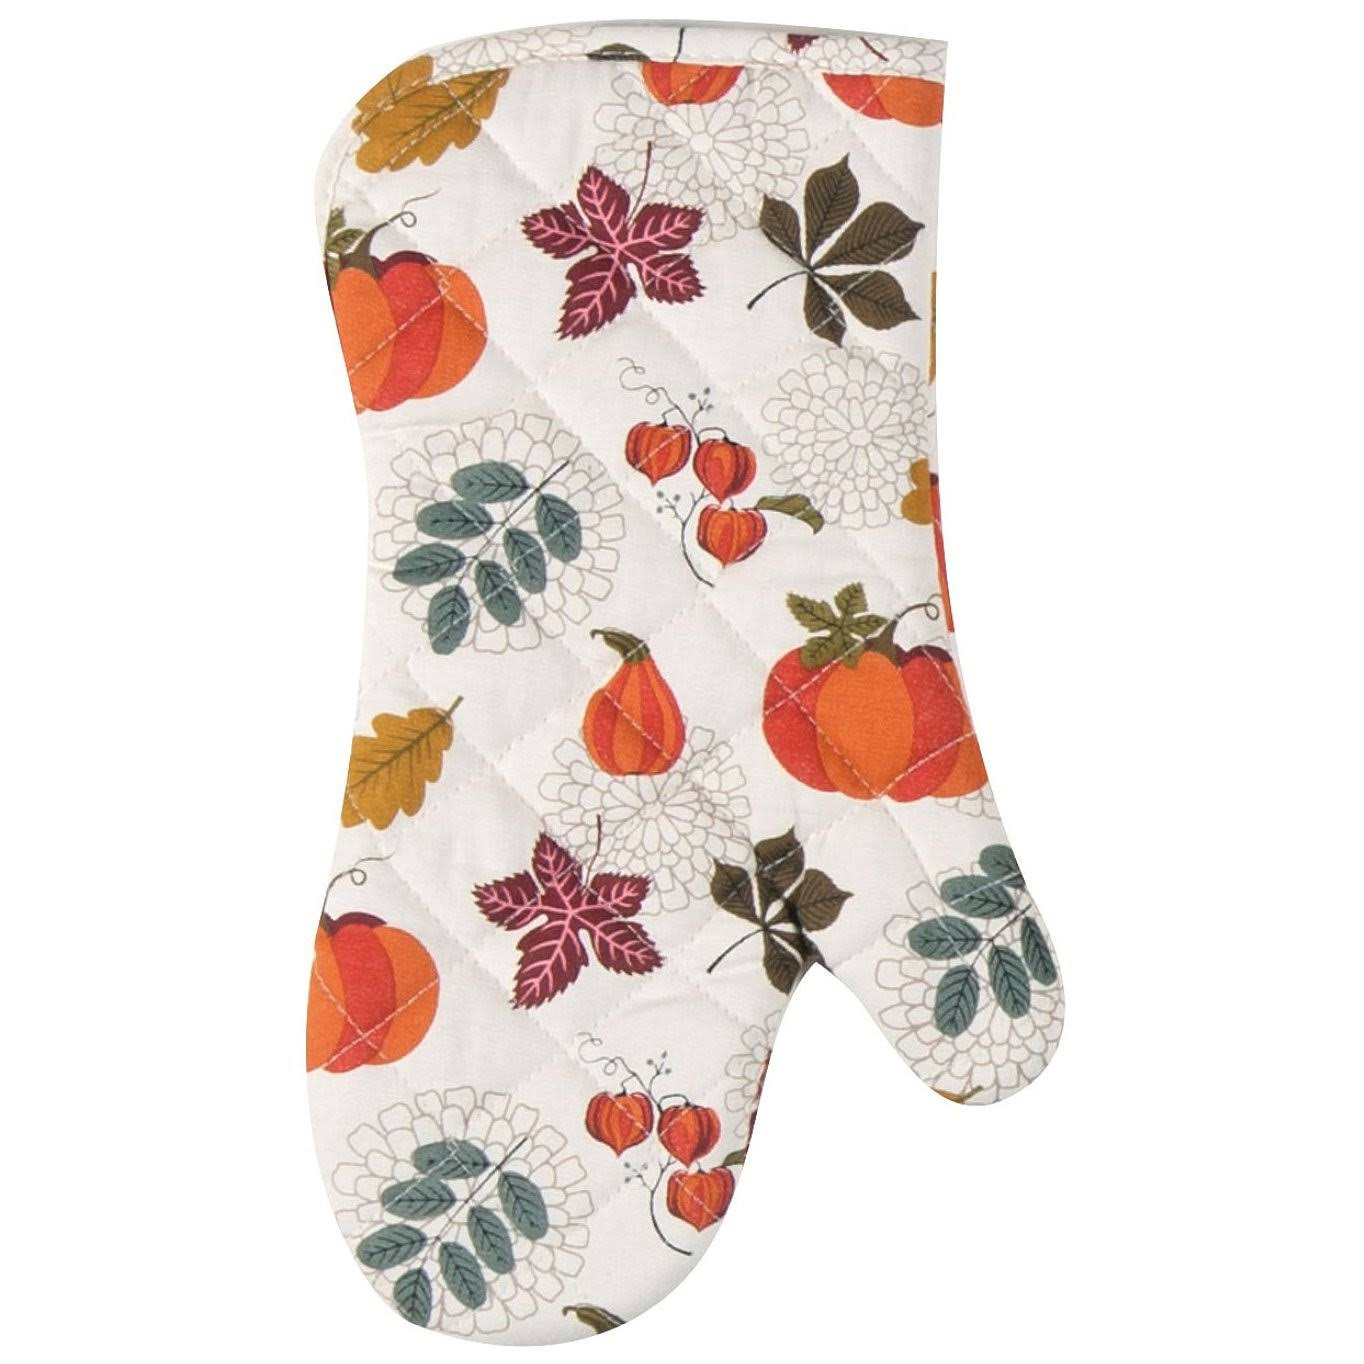 Kay Dee Autumn Leaves and Pumpkins Fall Harvest Kitchen Oven Mitt